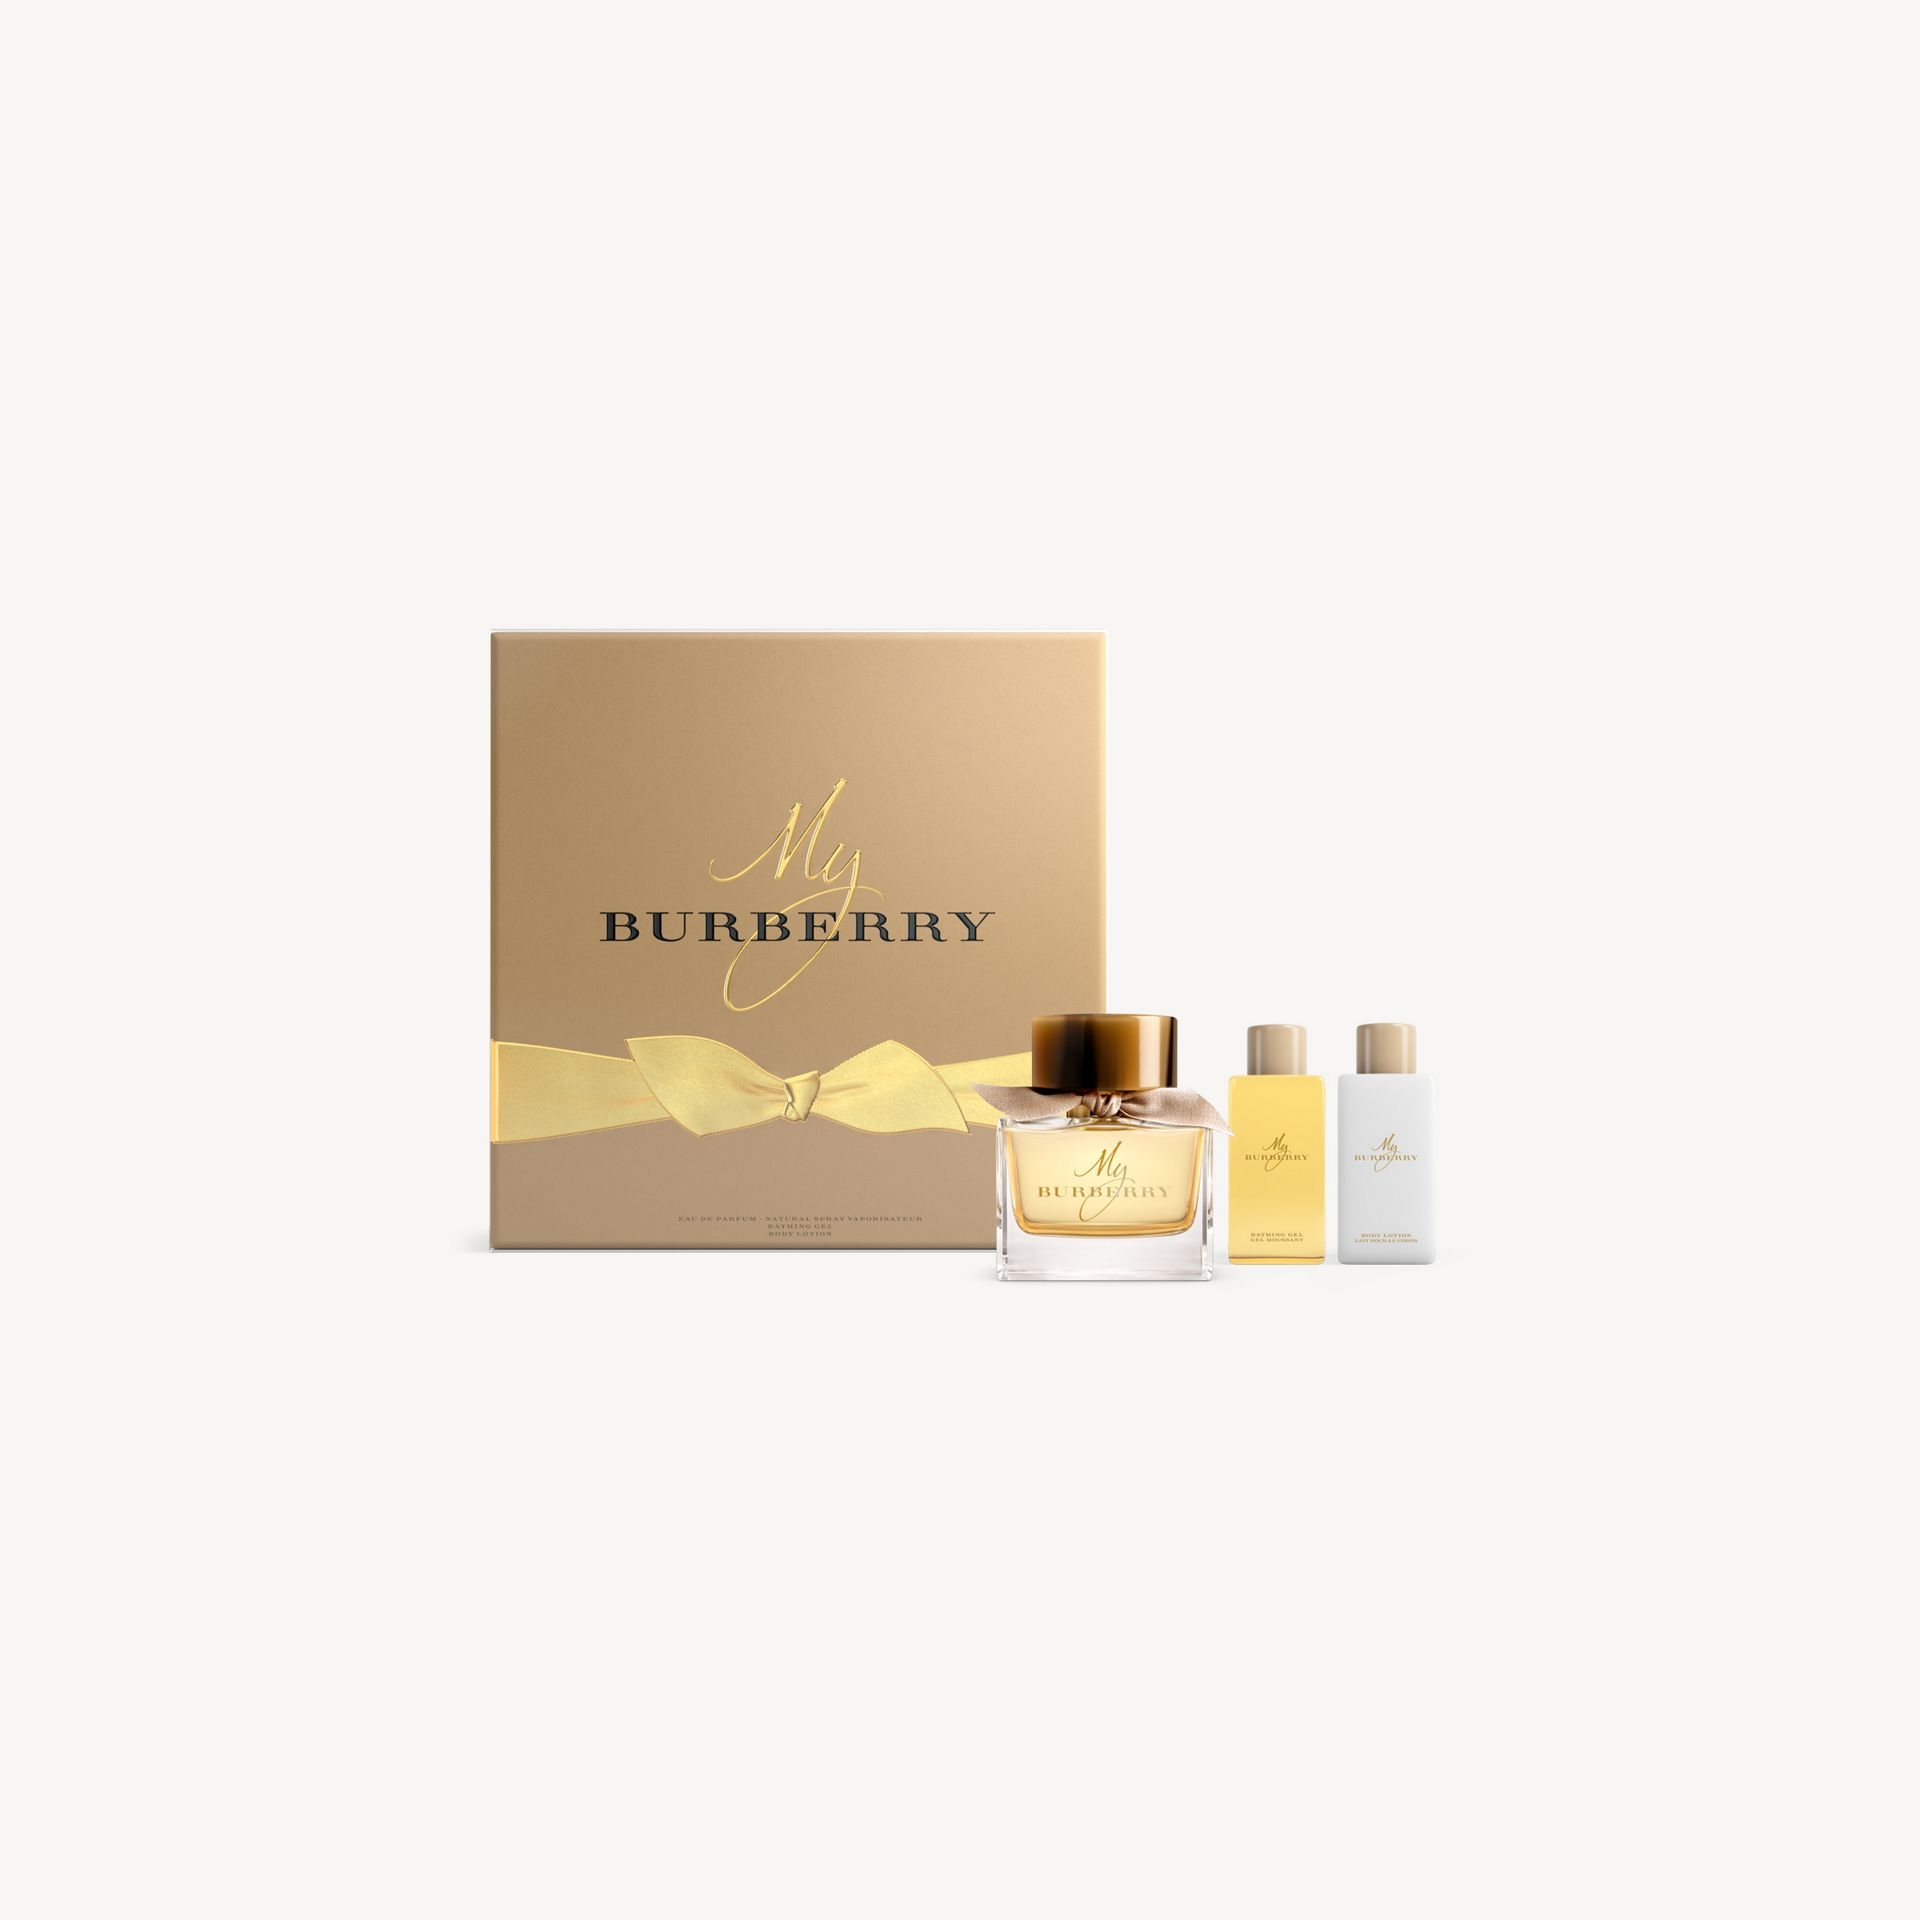 My Burberry Eau de Parfum Festive Luxury Set - gallery image 1